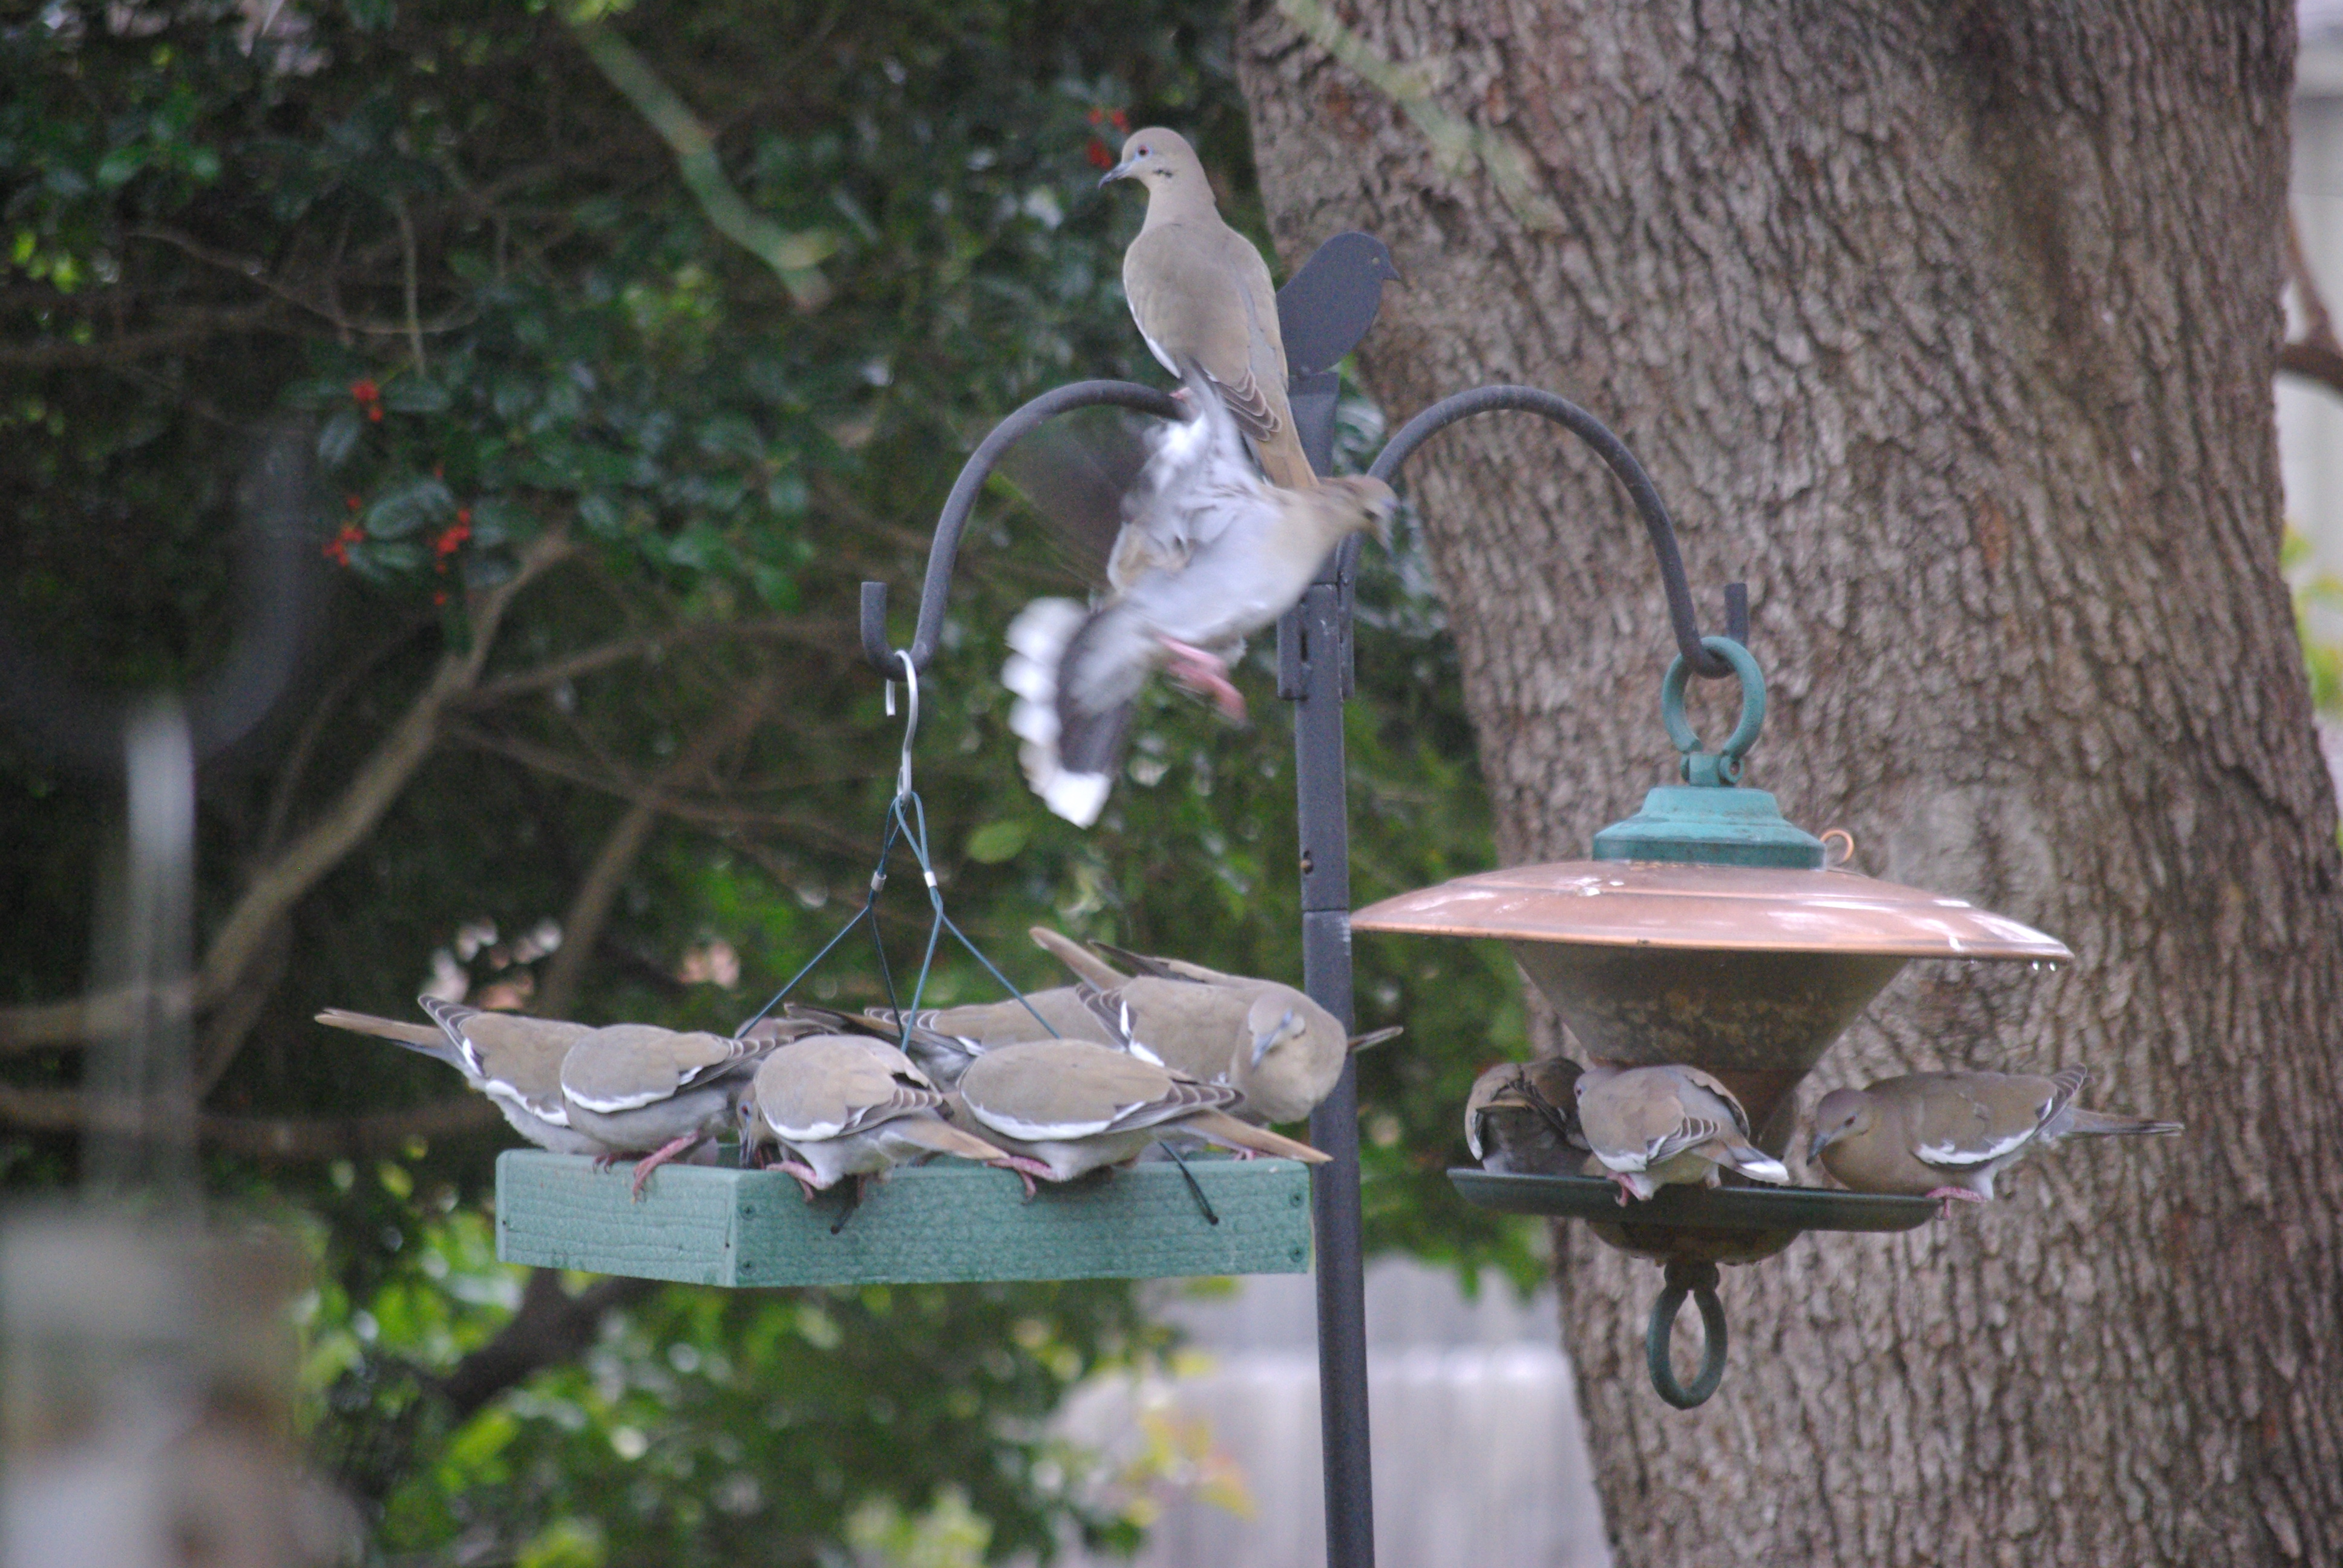 wars how to ground garden minimize spaces their story feeder in presence home squirrel life bird